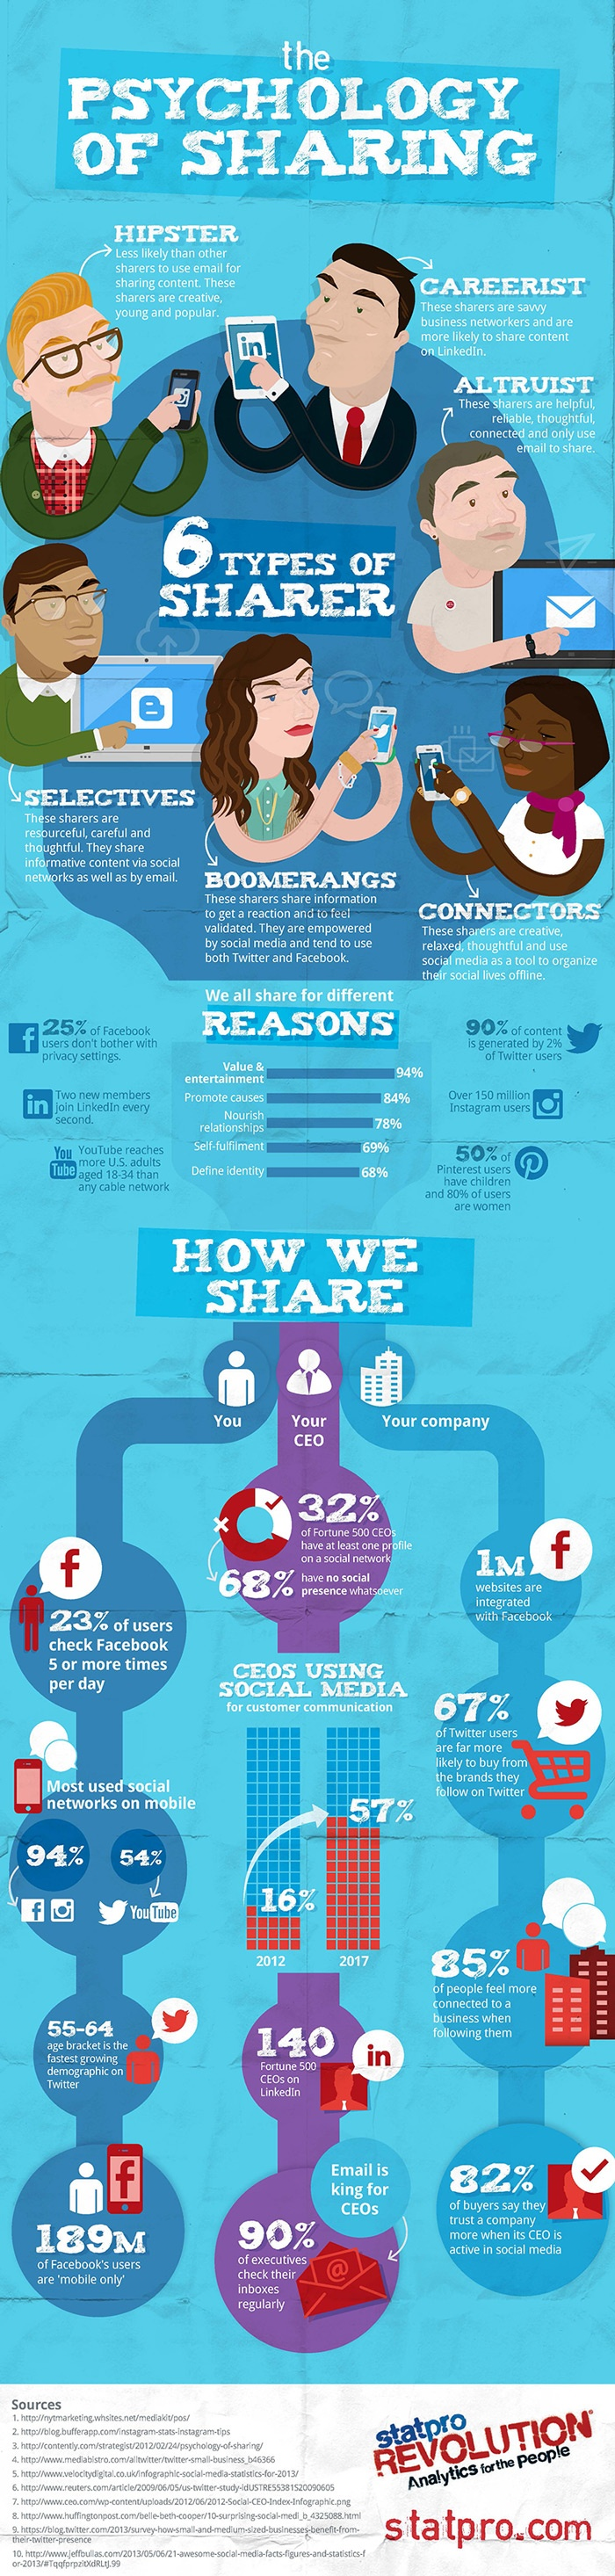 psychology demographic social network business sharing infographic